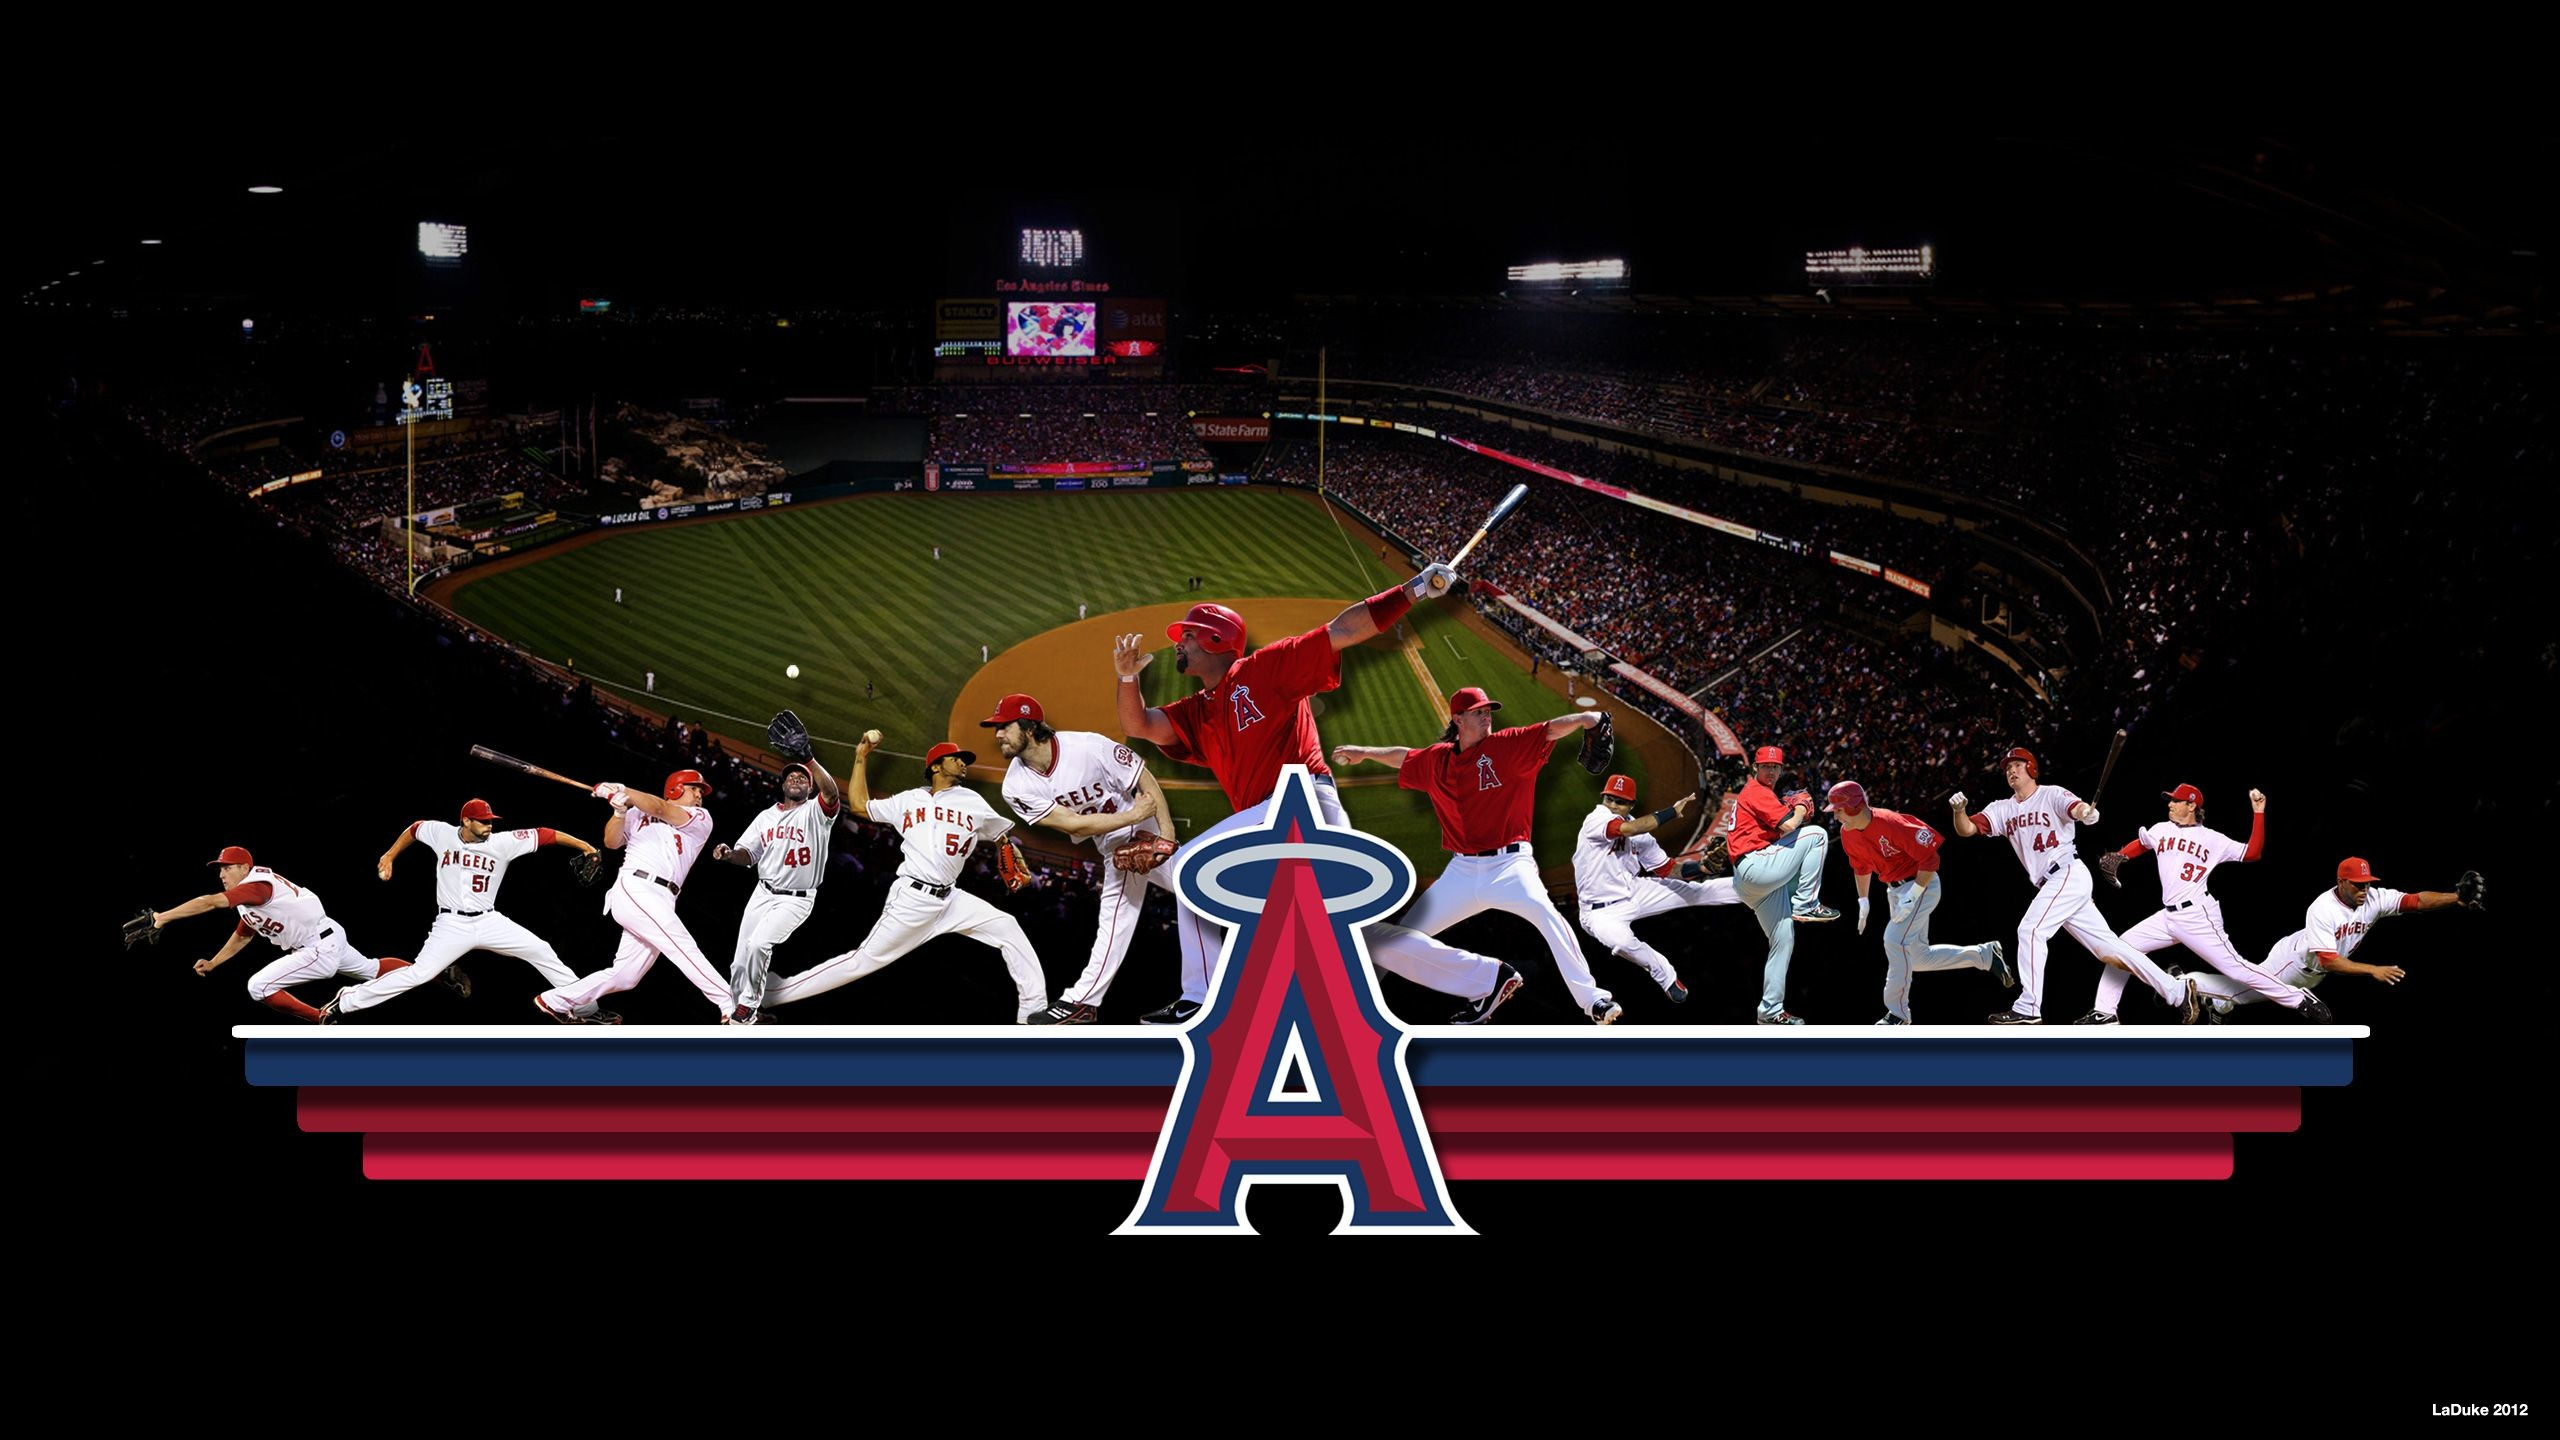 2560x1440 Angels Baseball Wallpapers - http://wallpaperzoo.com/angels-baseball-